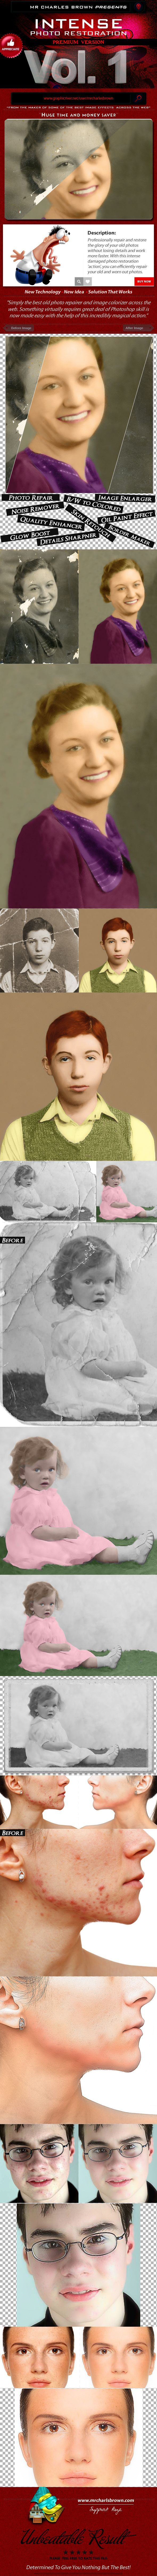 Intense Photo Restoration — Photoshop ABR #aged photo #old photo repair • Available here → https://graphicriver.net/item/intense-photo-restoration/16046637?ref=pxcr